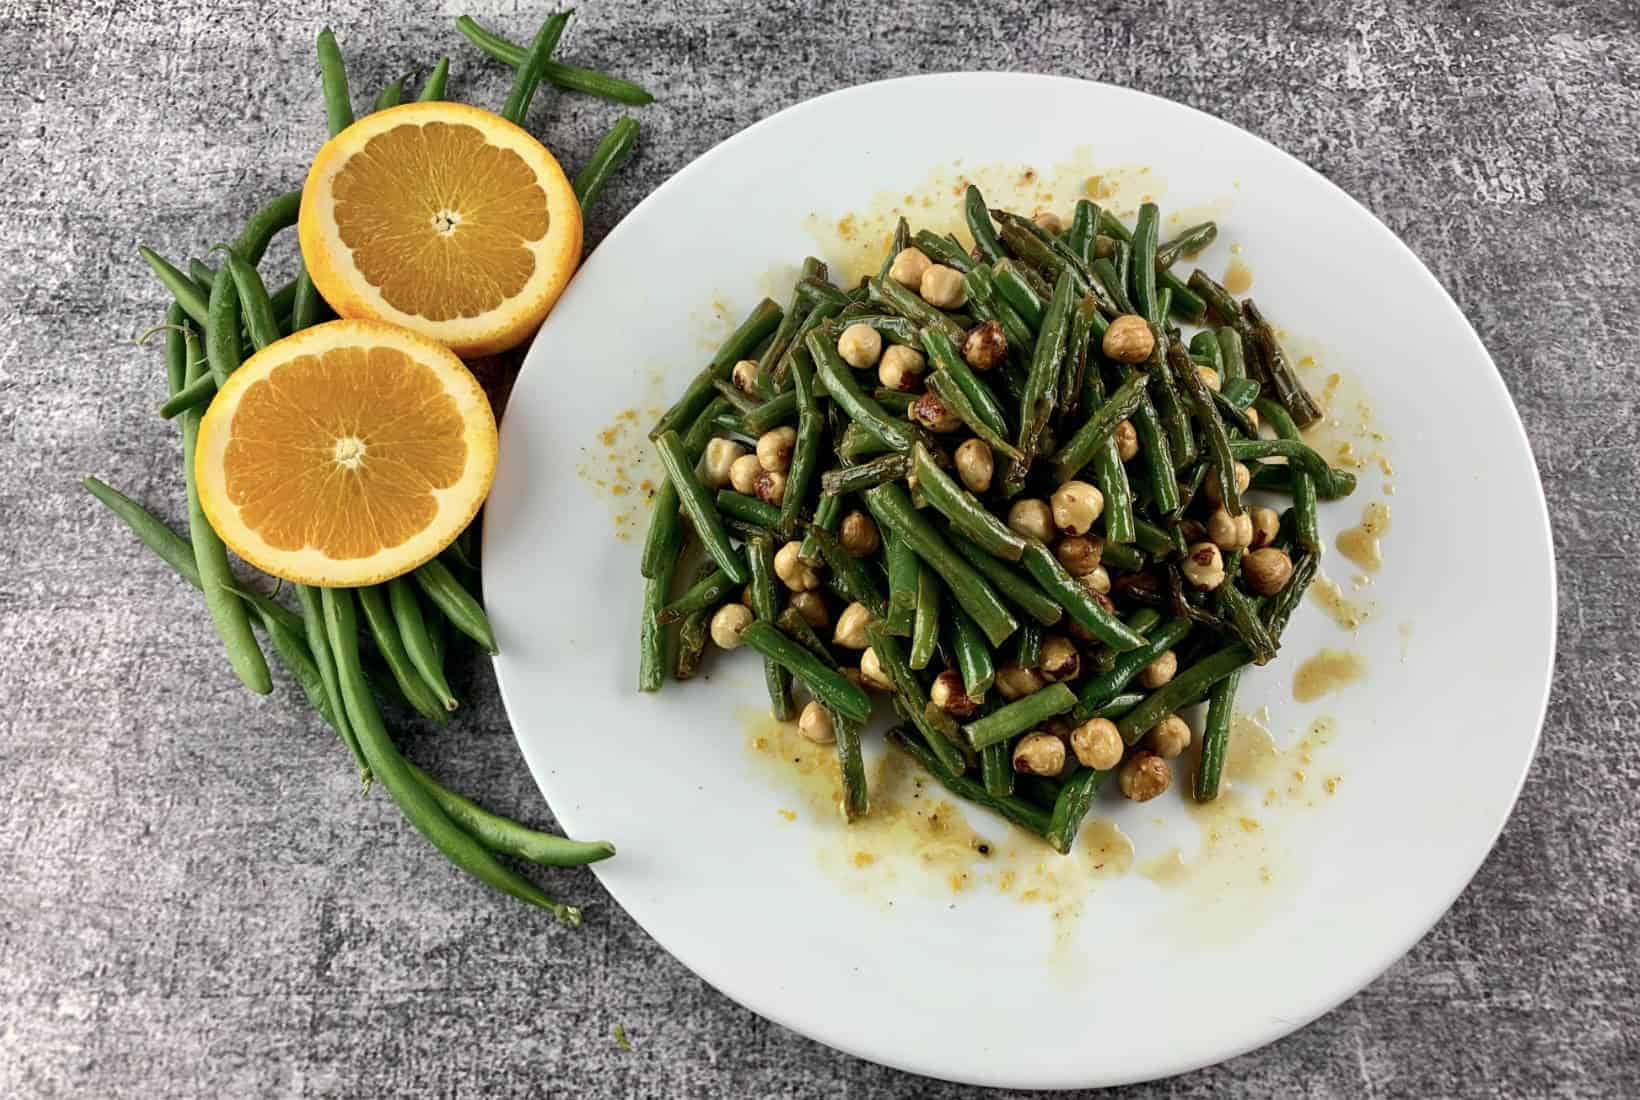 GREEN BEAN SALAD WITH ORANGE AND HAZELNUTS IN A WHITE PLATTER WITH ORANGE SLICES & BEANS ON THE SIDE